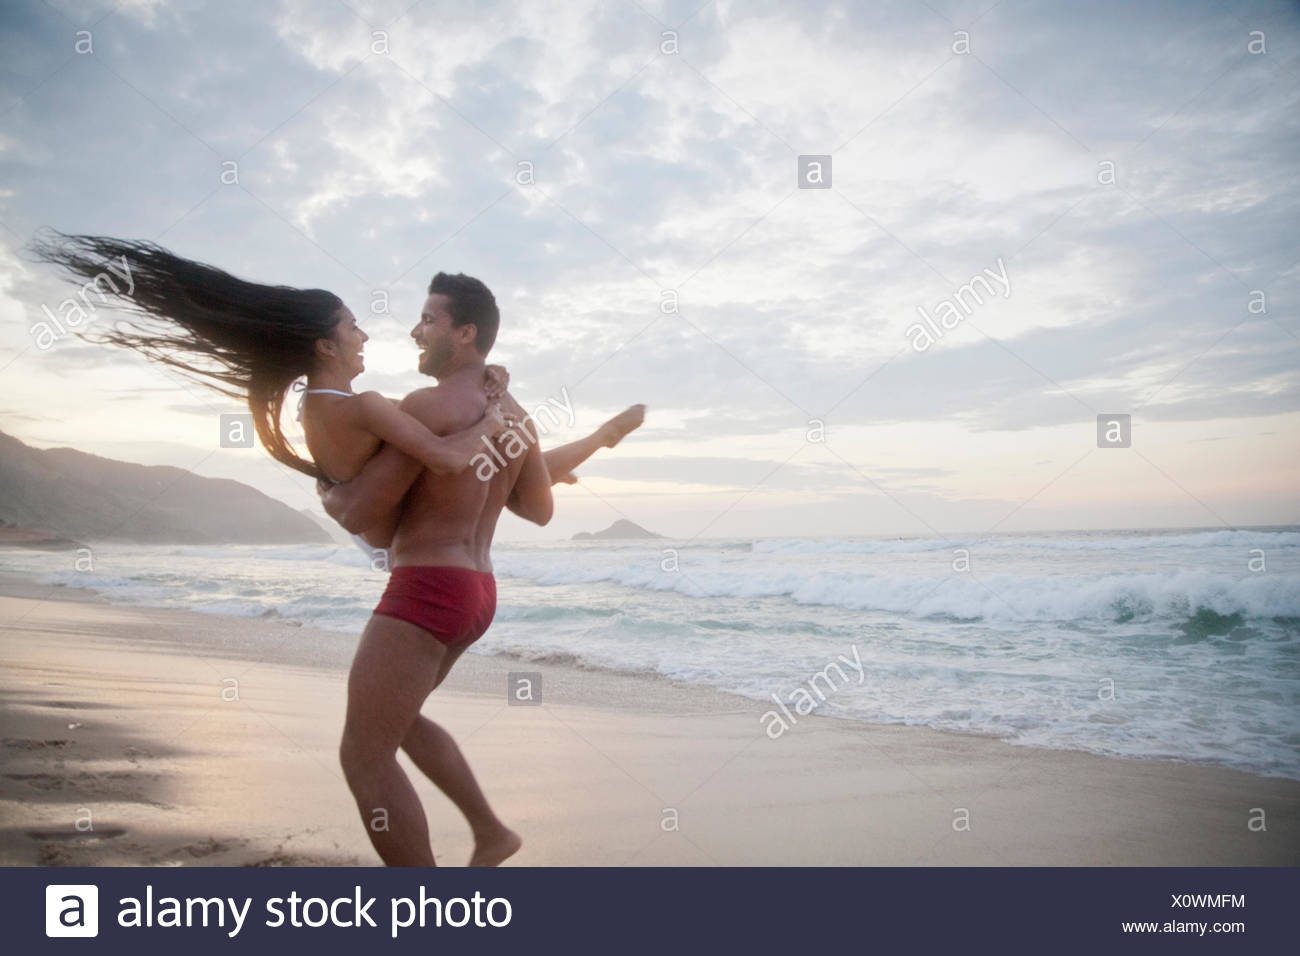 Mid adult couple on beach, man carrying woman in arms, rear view - Stock Image